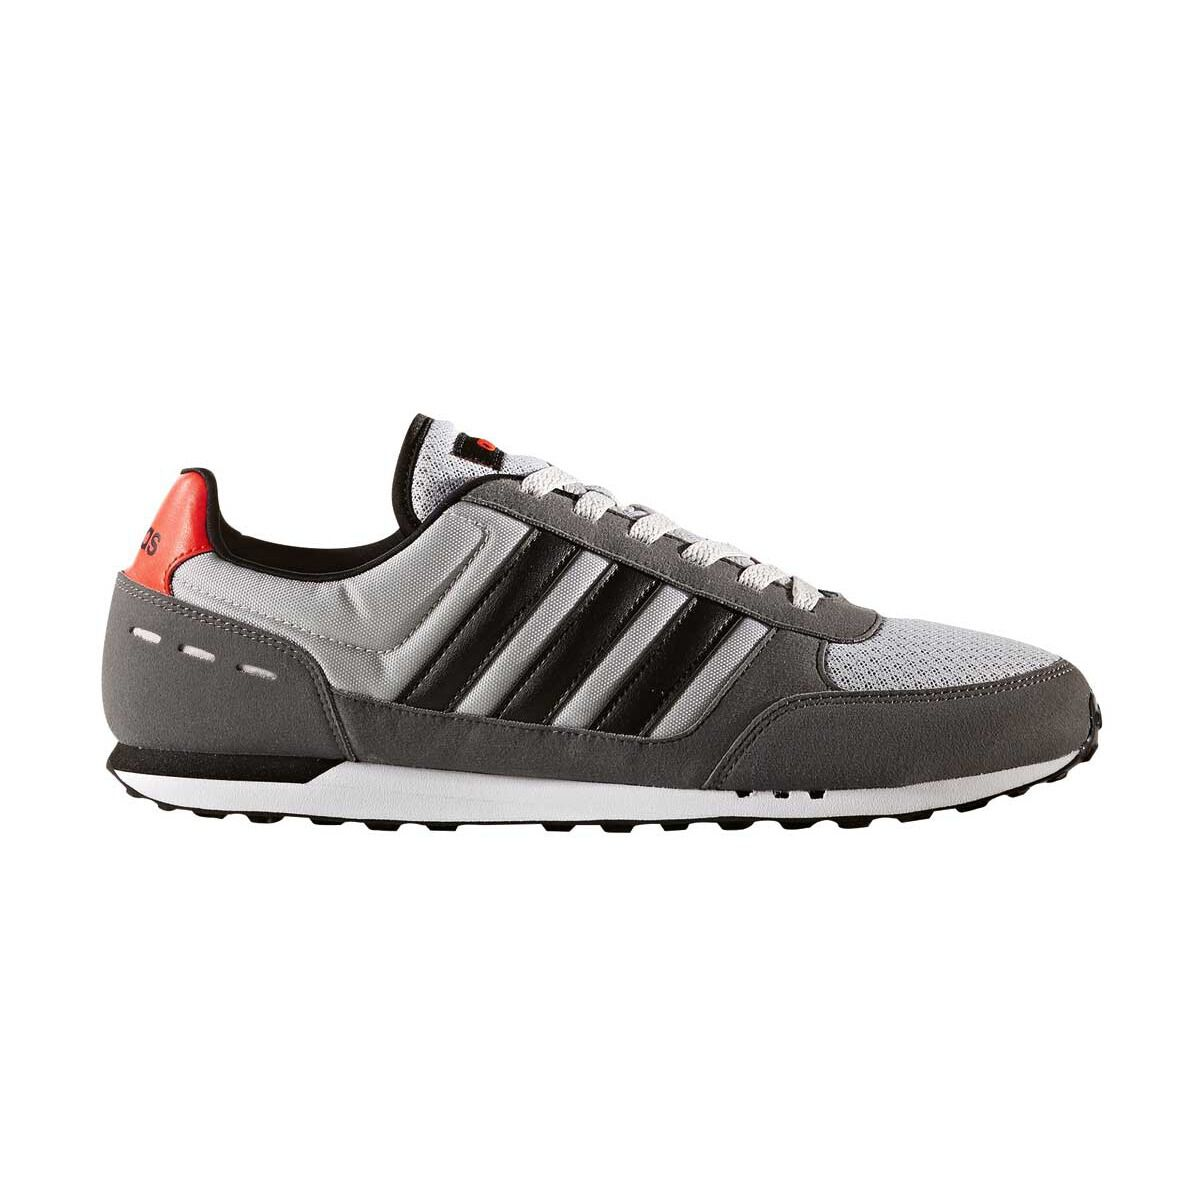 hot sale online 5208f 68473 ... where to buy adidas neo city racer mens casual shoes grey black us 9  grey black